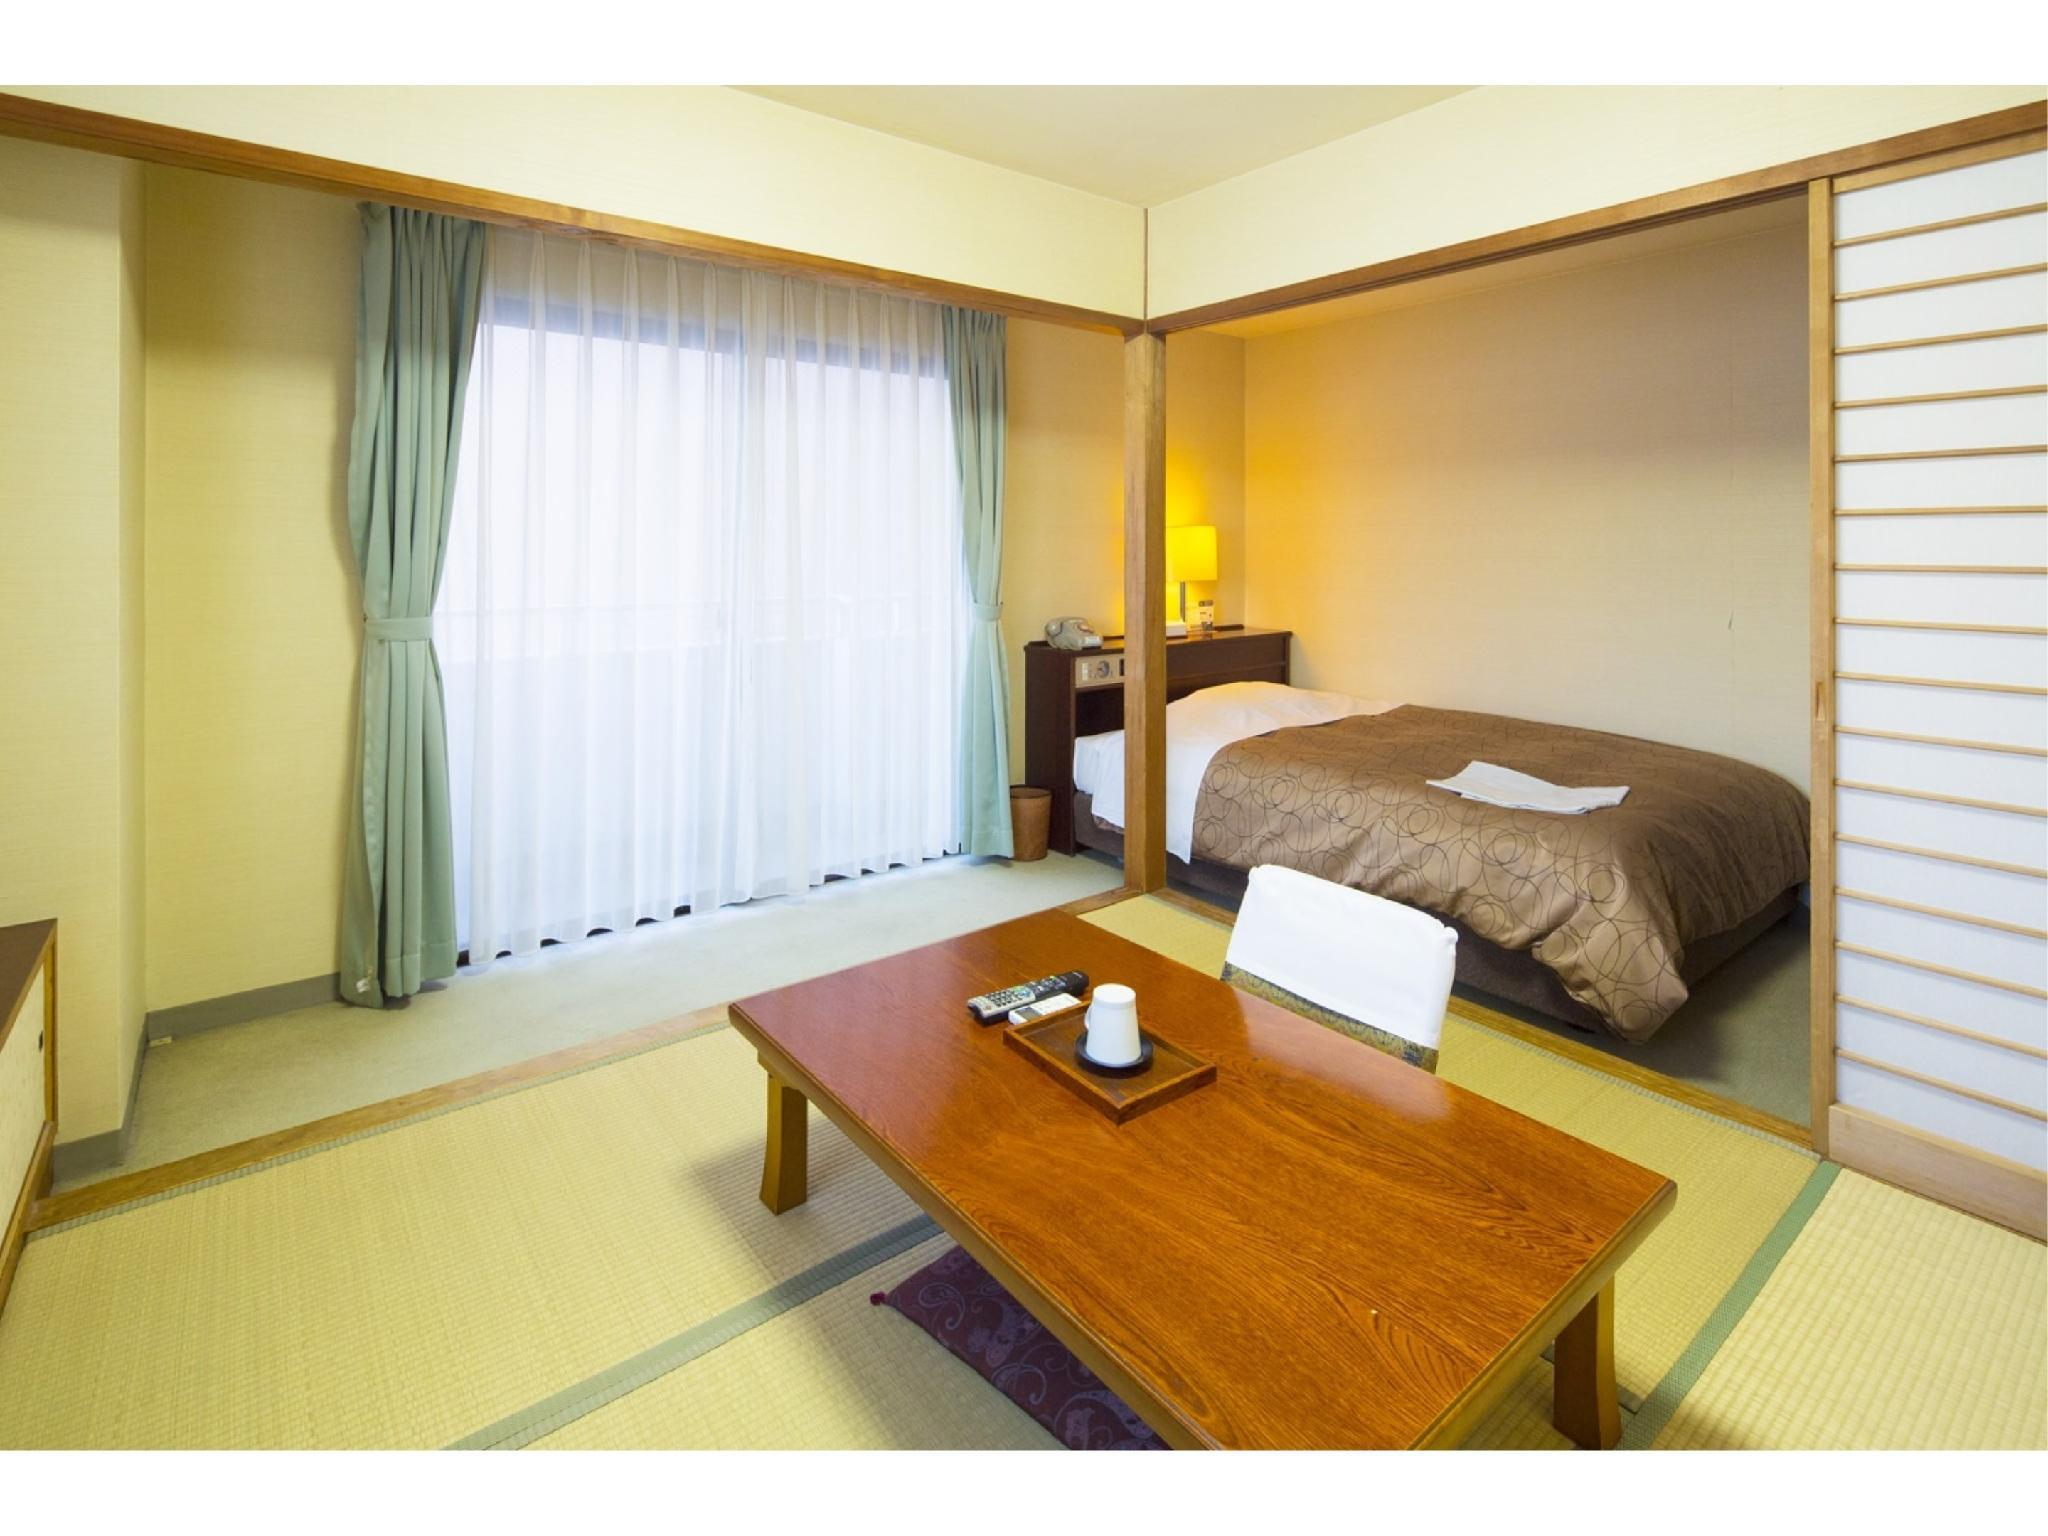 和洋式房(和式房+1張雙人中床+洗衣機) (Japanese/Western-style Room with Washing Machine (1 Semi-double Bed + Japanese-style Room))